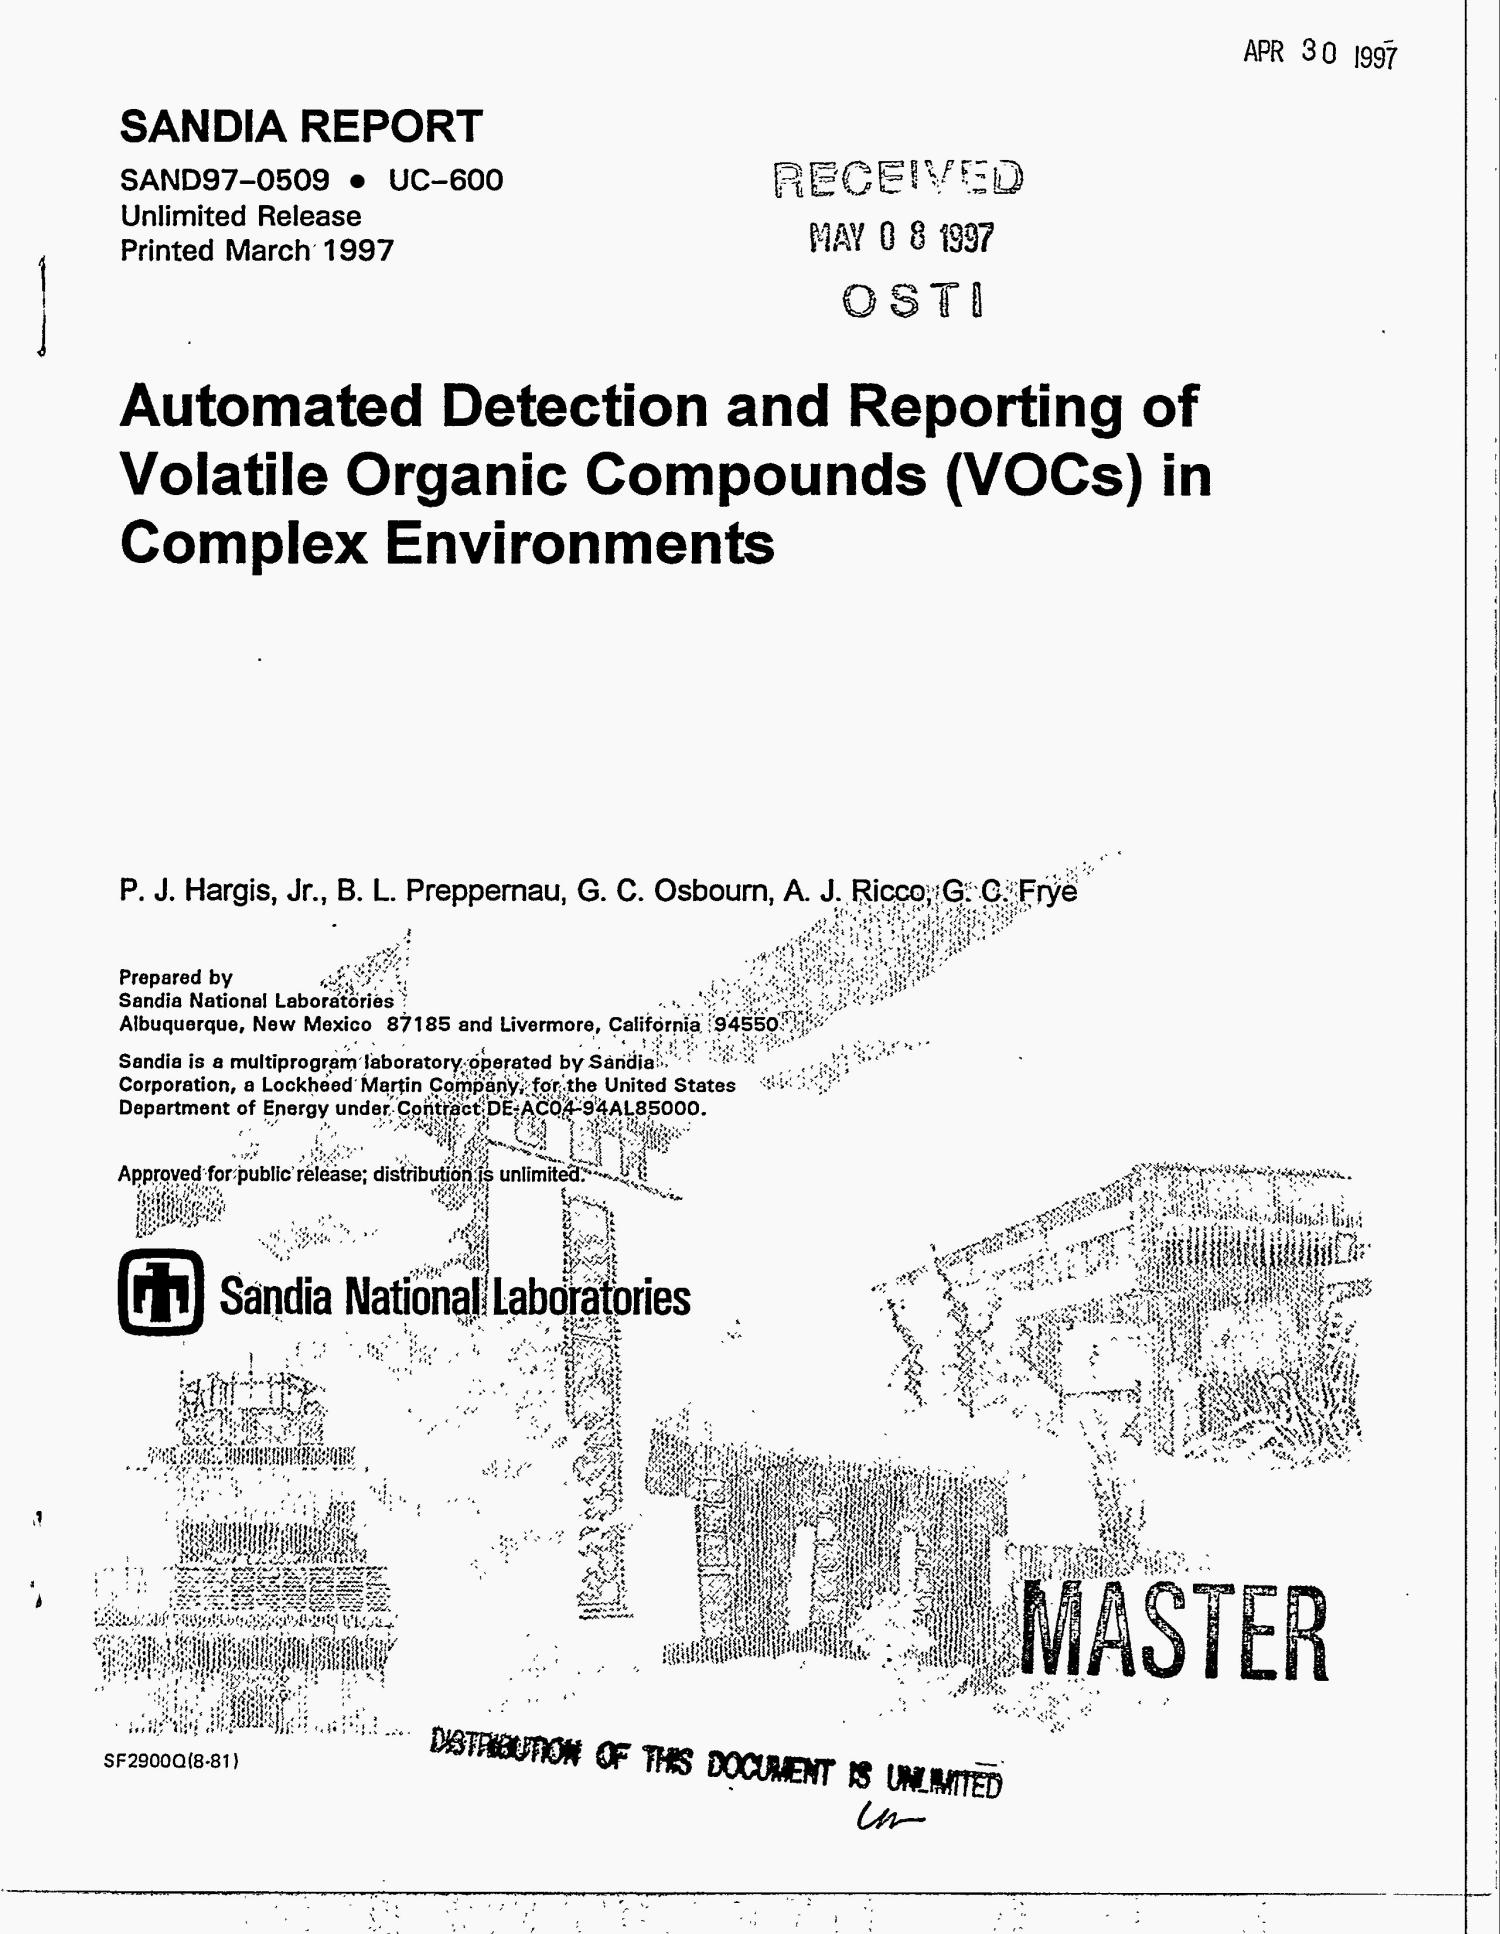 Automated detection and reporting of Volatile Organic Compounds (VOCs) in complex environments                                                                                                      [Sequence #]: 1 of 27